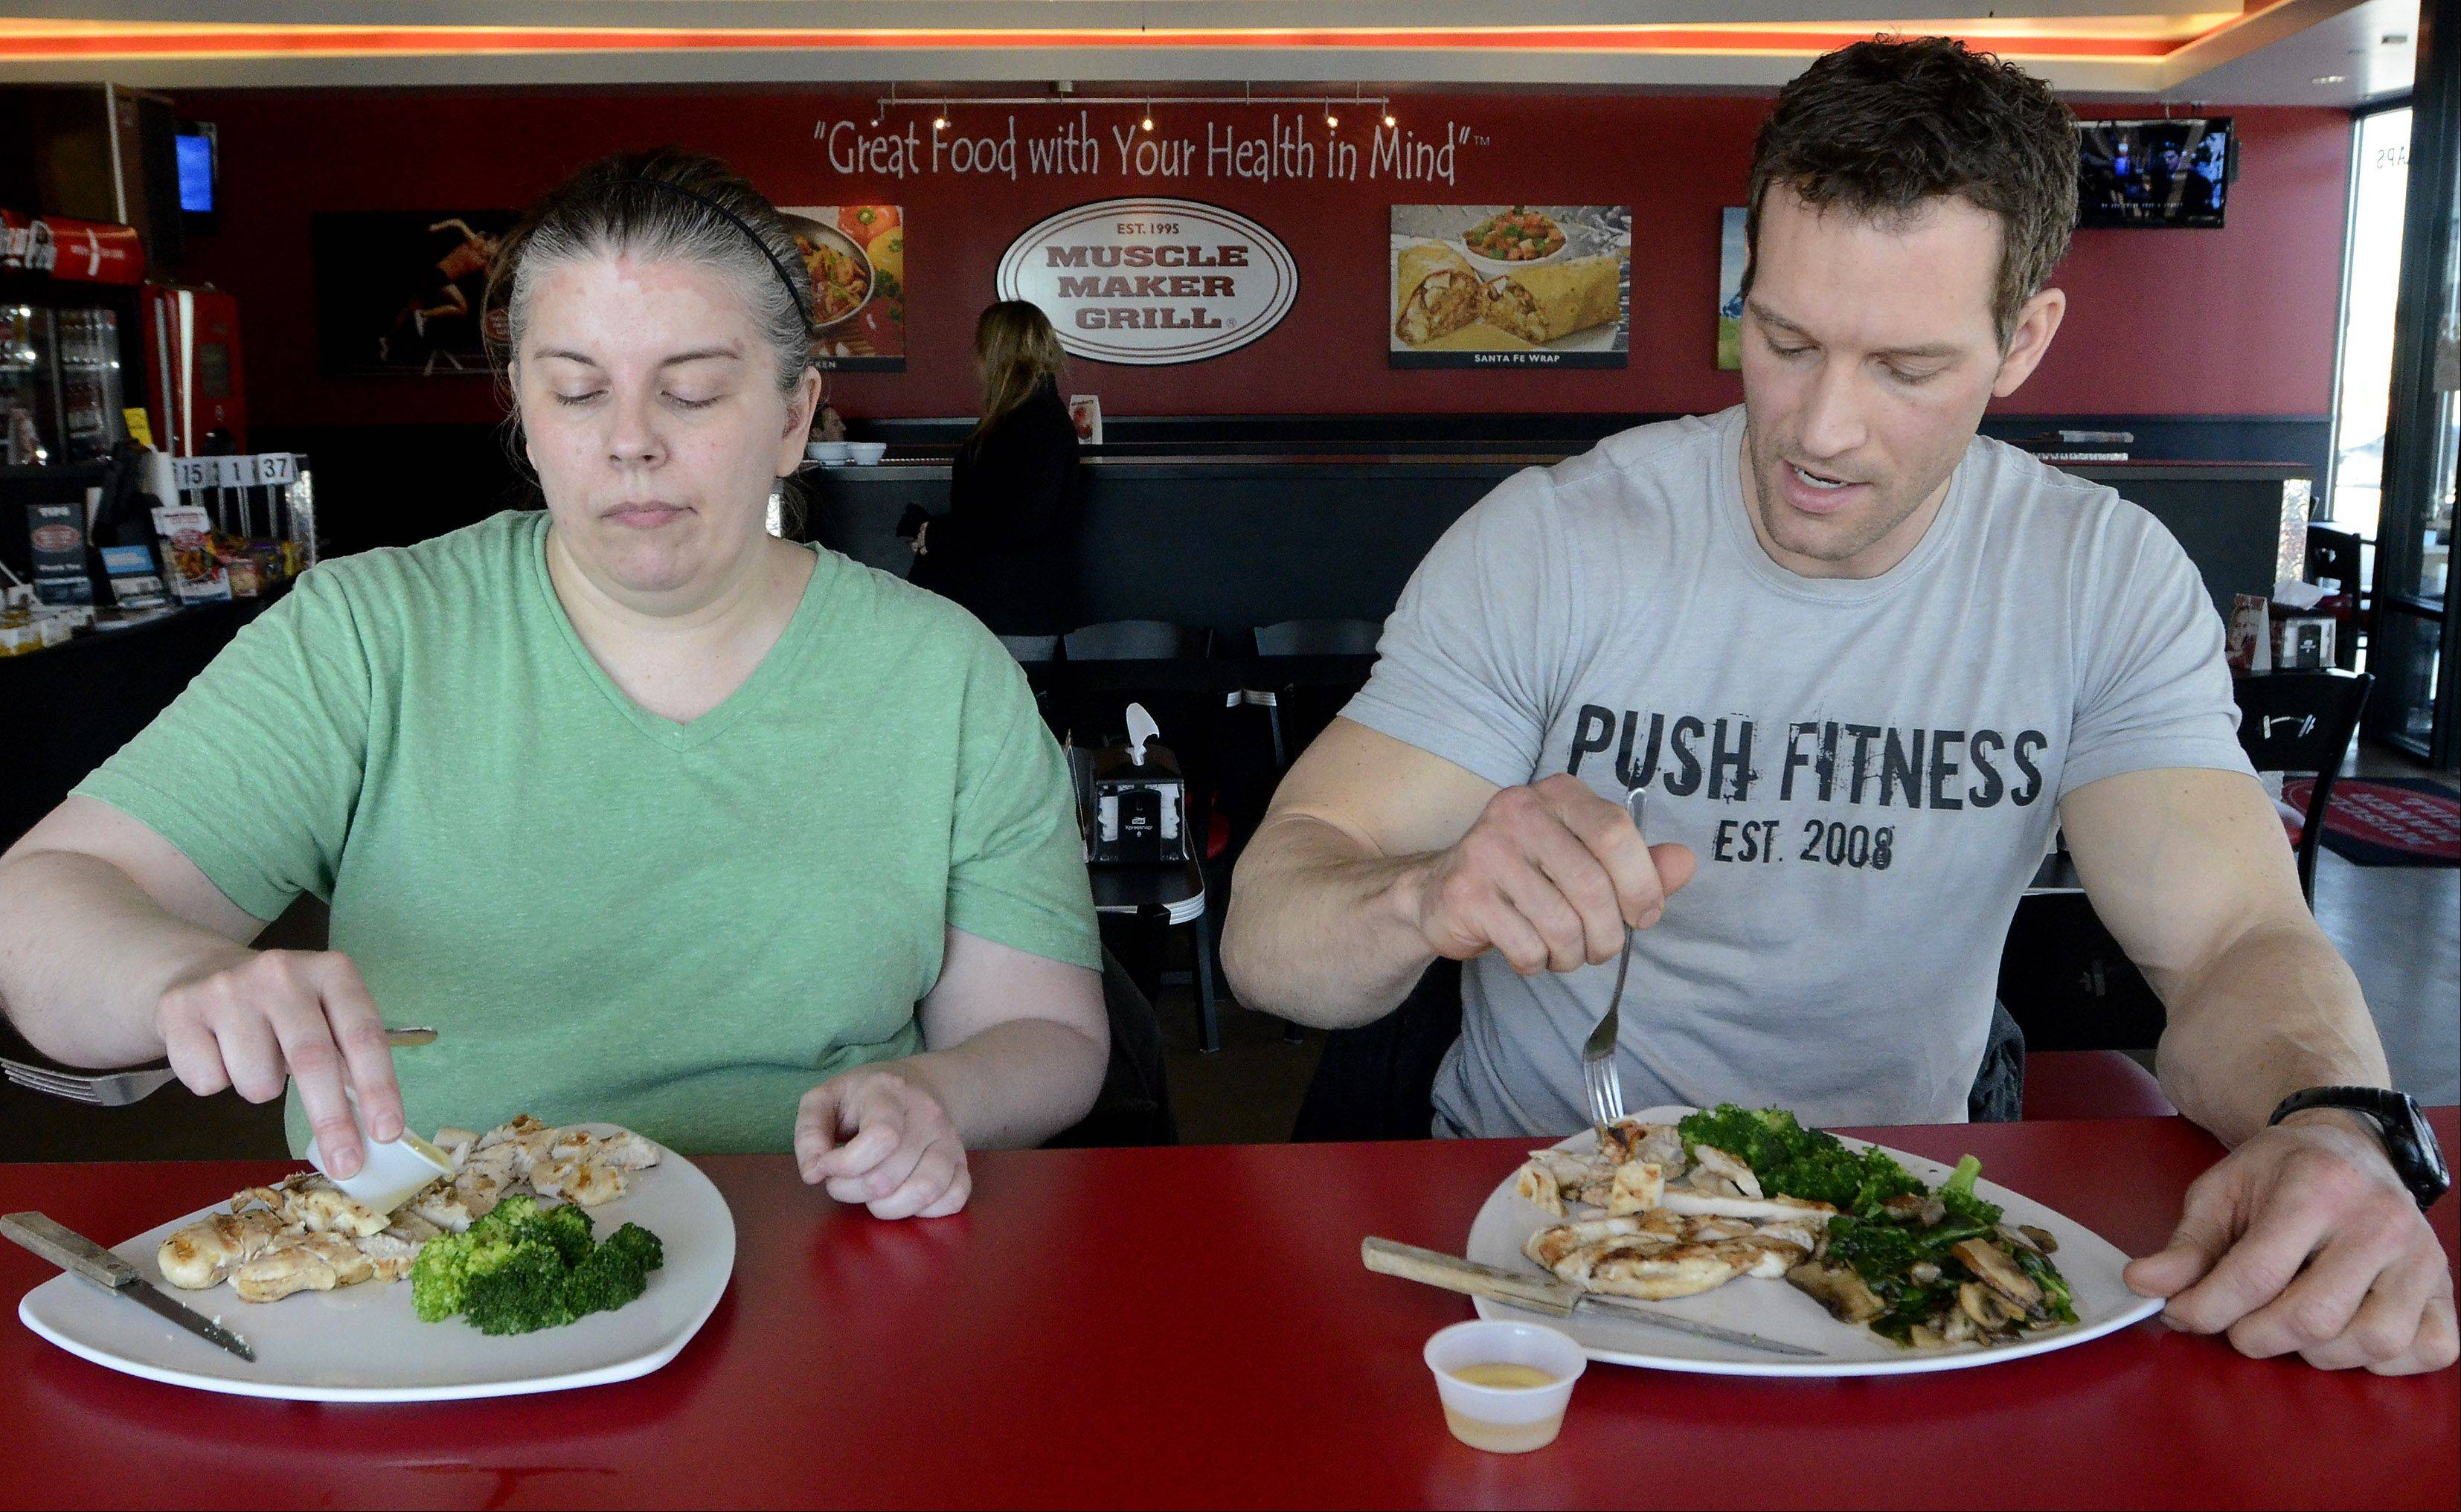 Push Fitness trainer Joshua Steckler and Melynda Findlay eat lunch at Muscle Maker Grill in Rolling Meadows.